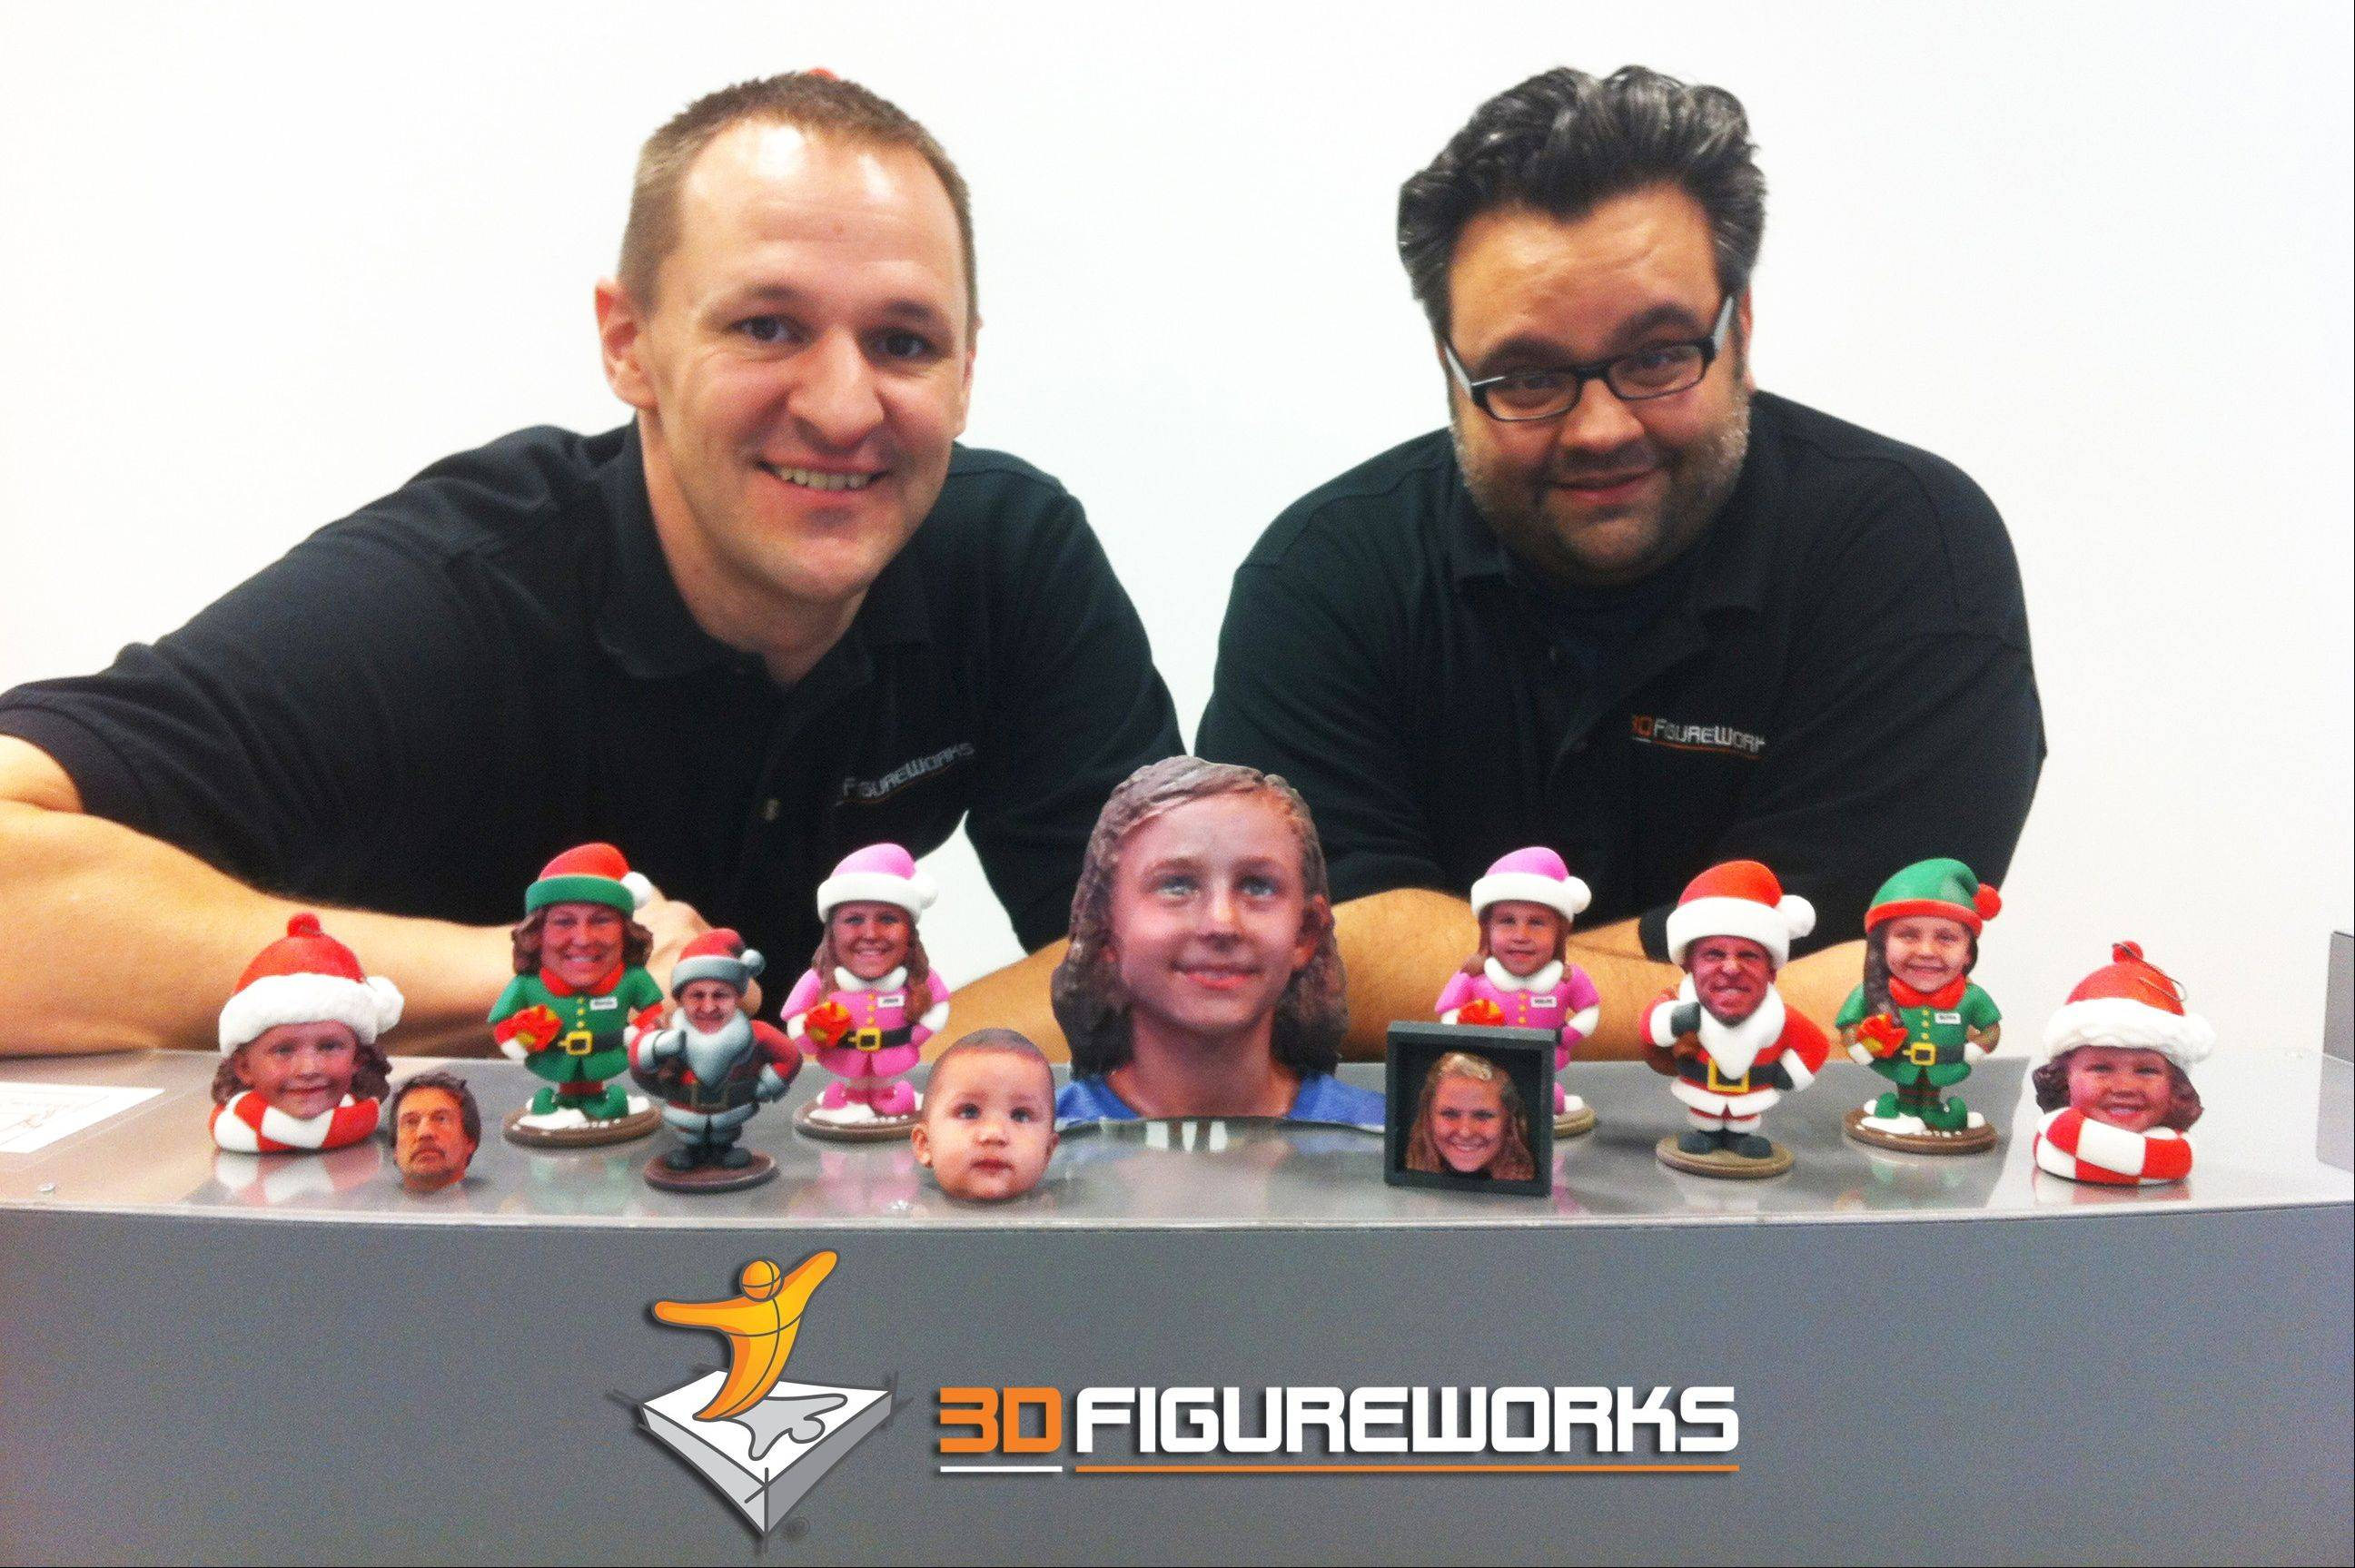 George Walrath, left, and Dominic Vallone are co-founders of 3D FigureWorks in St. Charles.